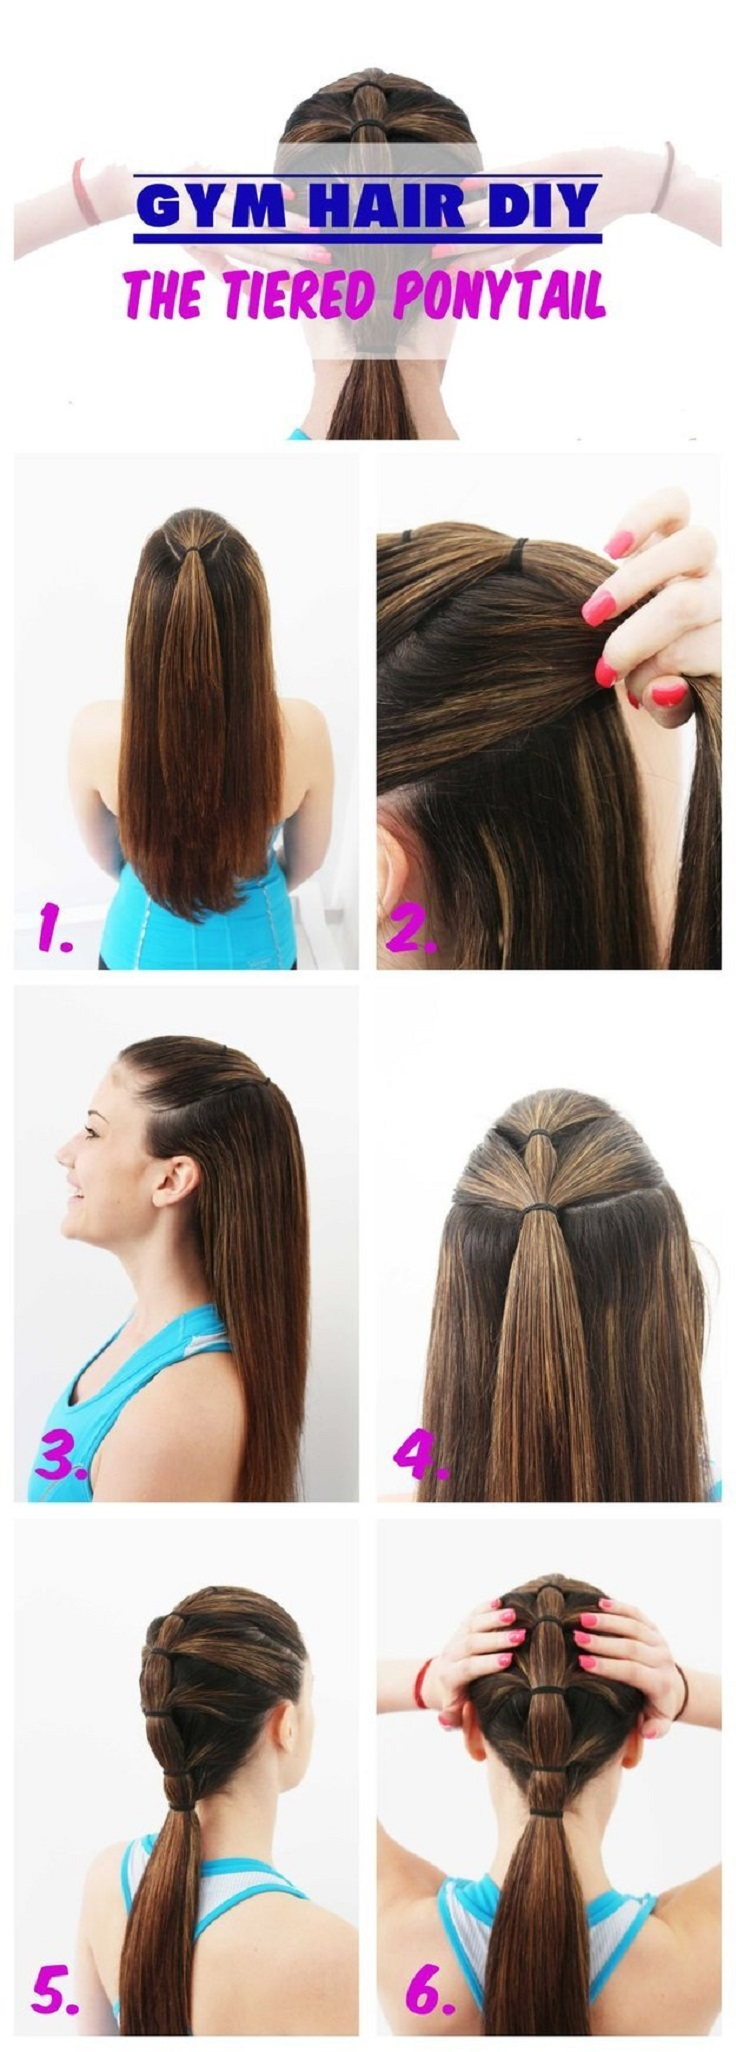 tiered-ponytail